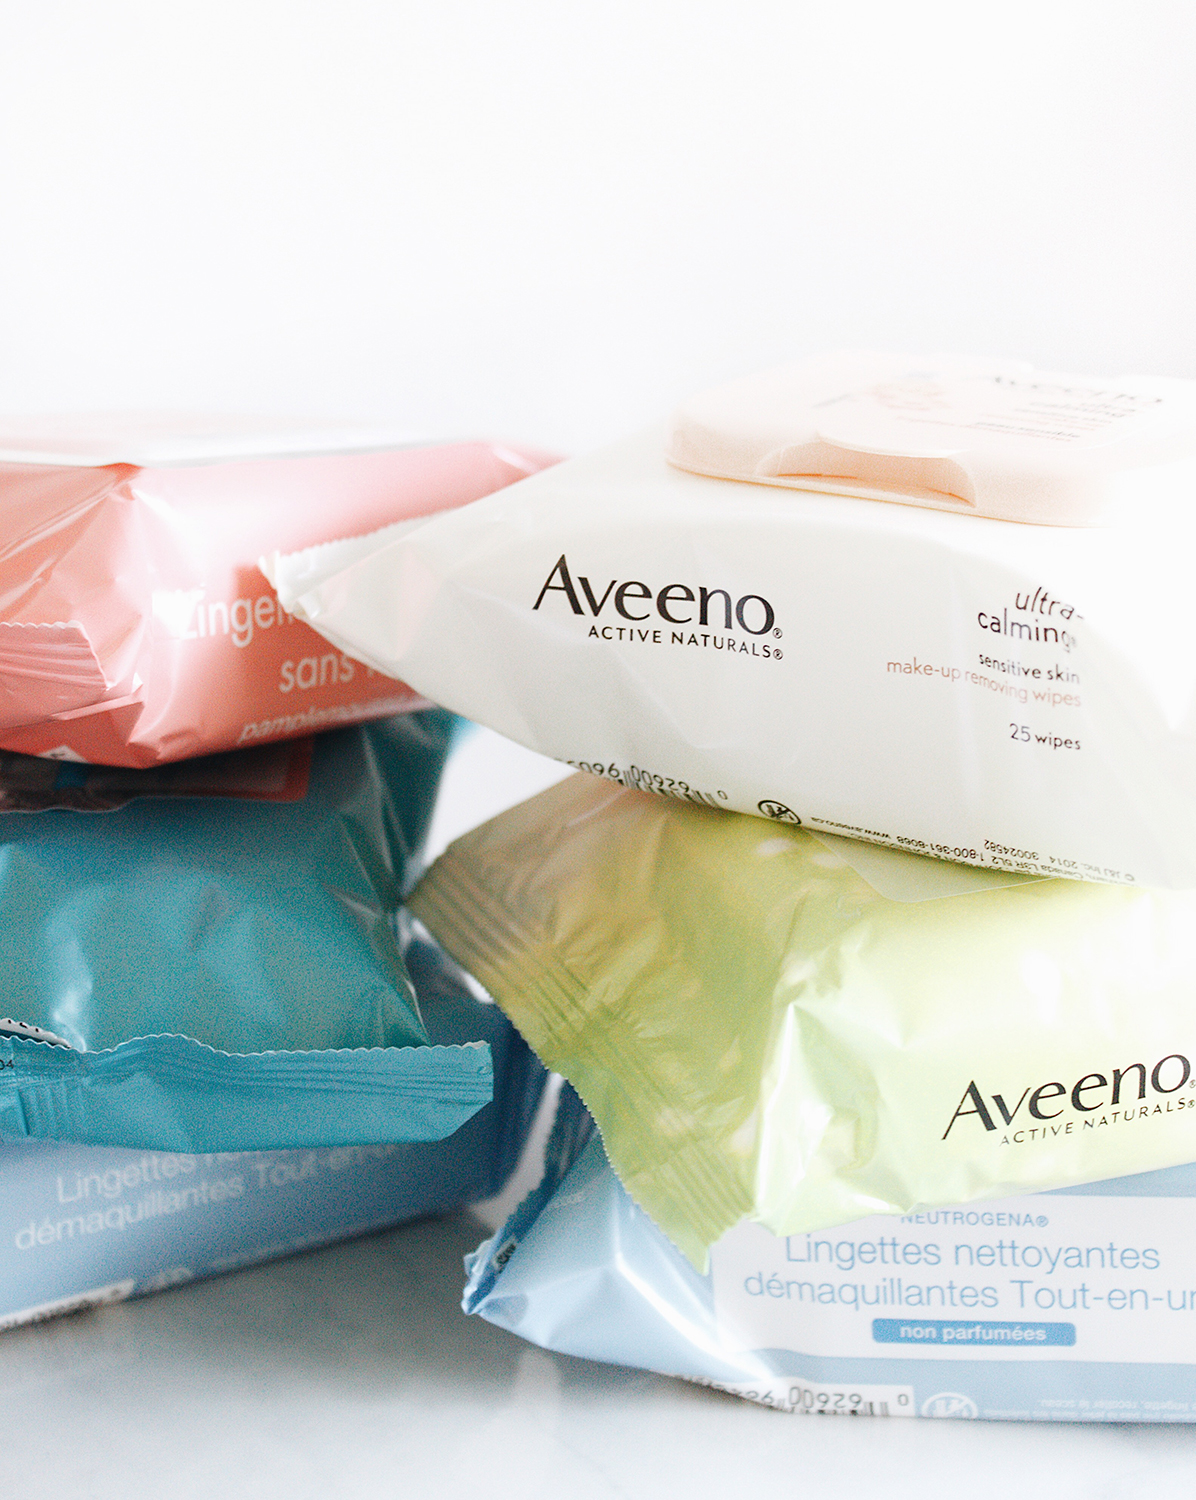 cleansing wipes from Aveeno and Neutrogena